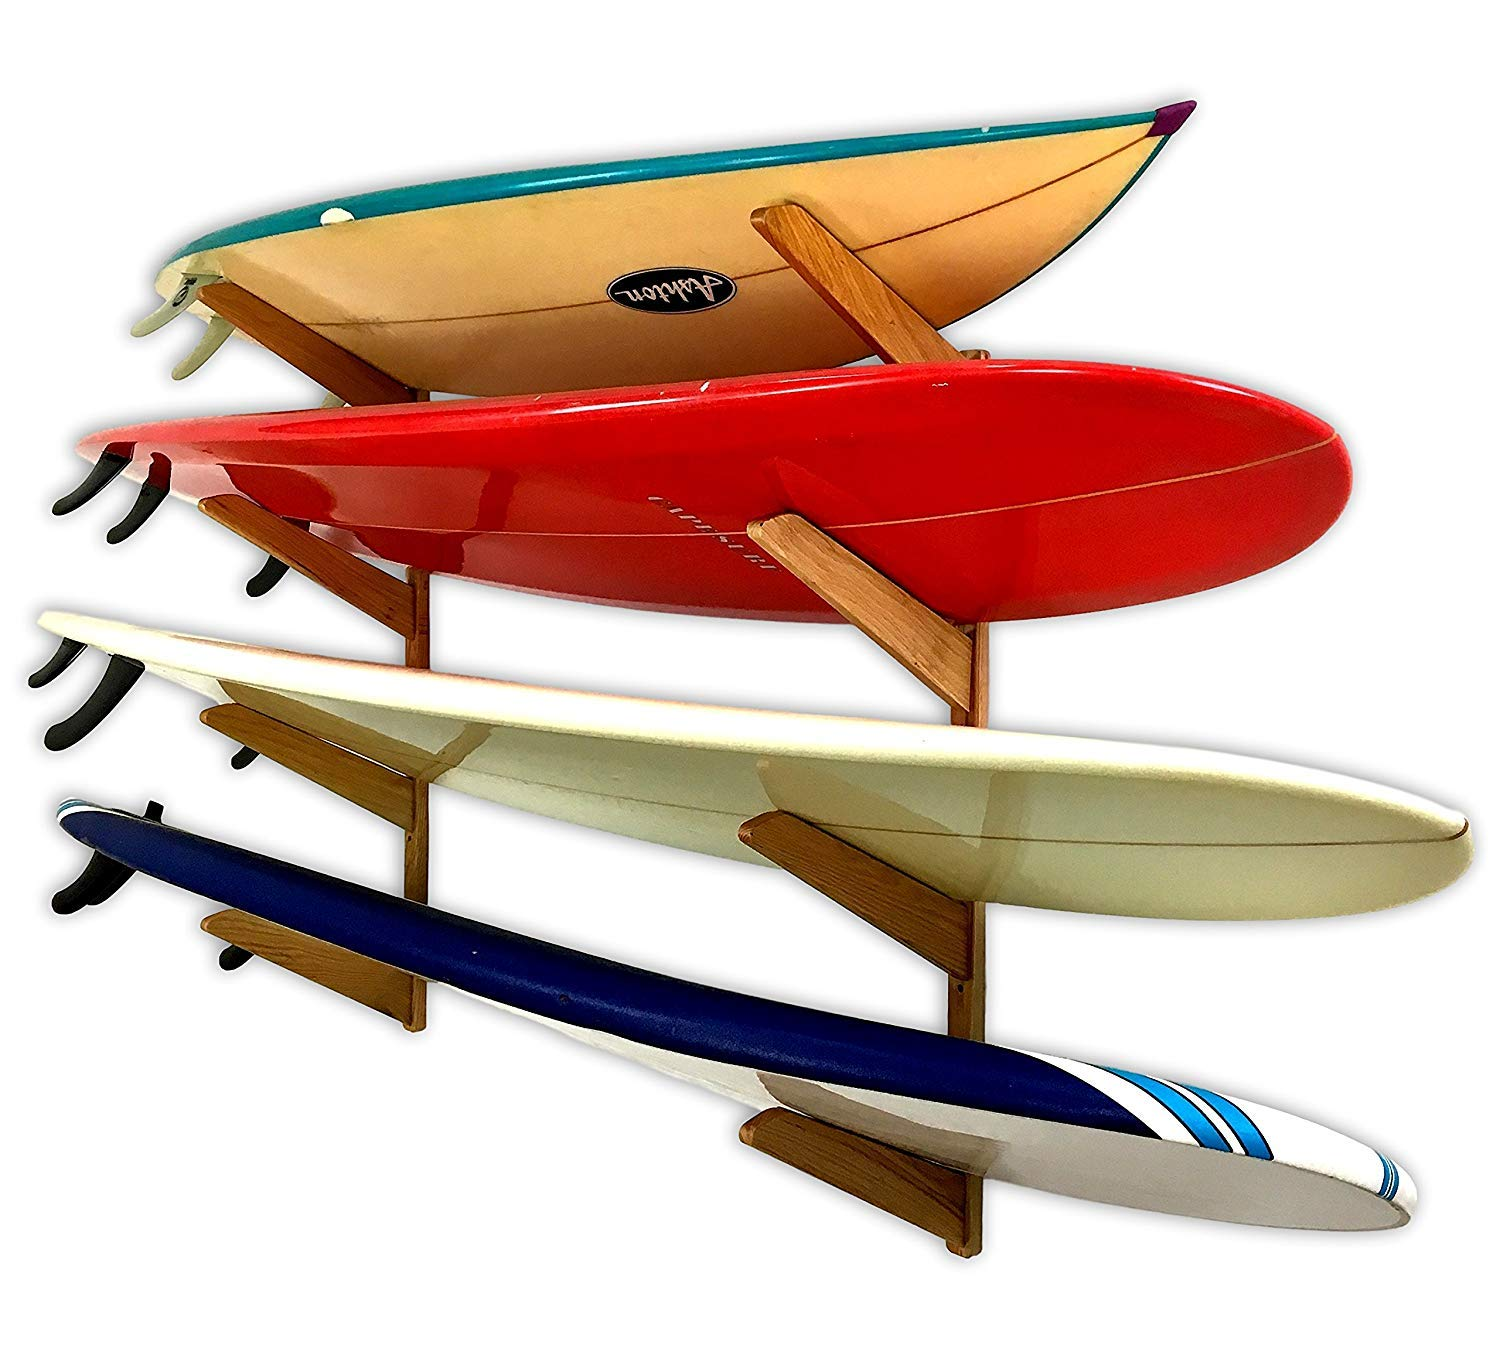 StoreYourBoard Timber Surfboard Wall Rack, Holds 4 Surfboards, Wood Home Storage Mount System, Natural by StoreYourBoard